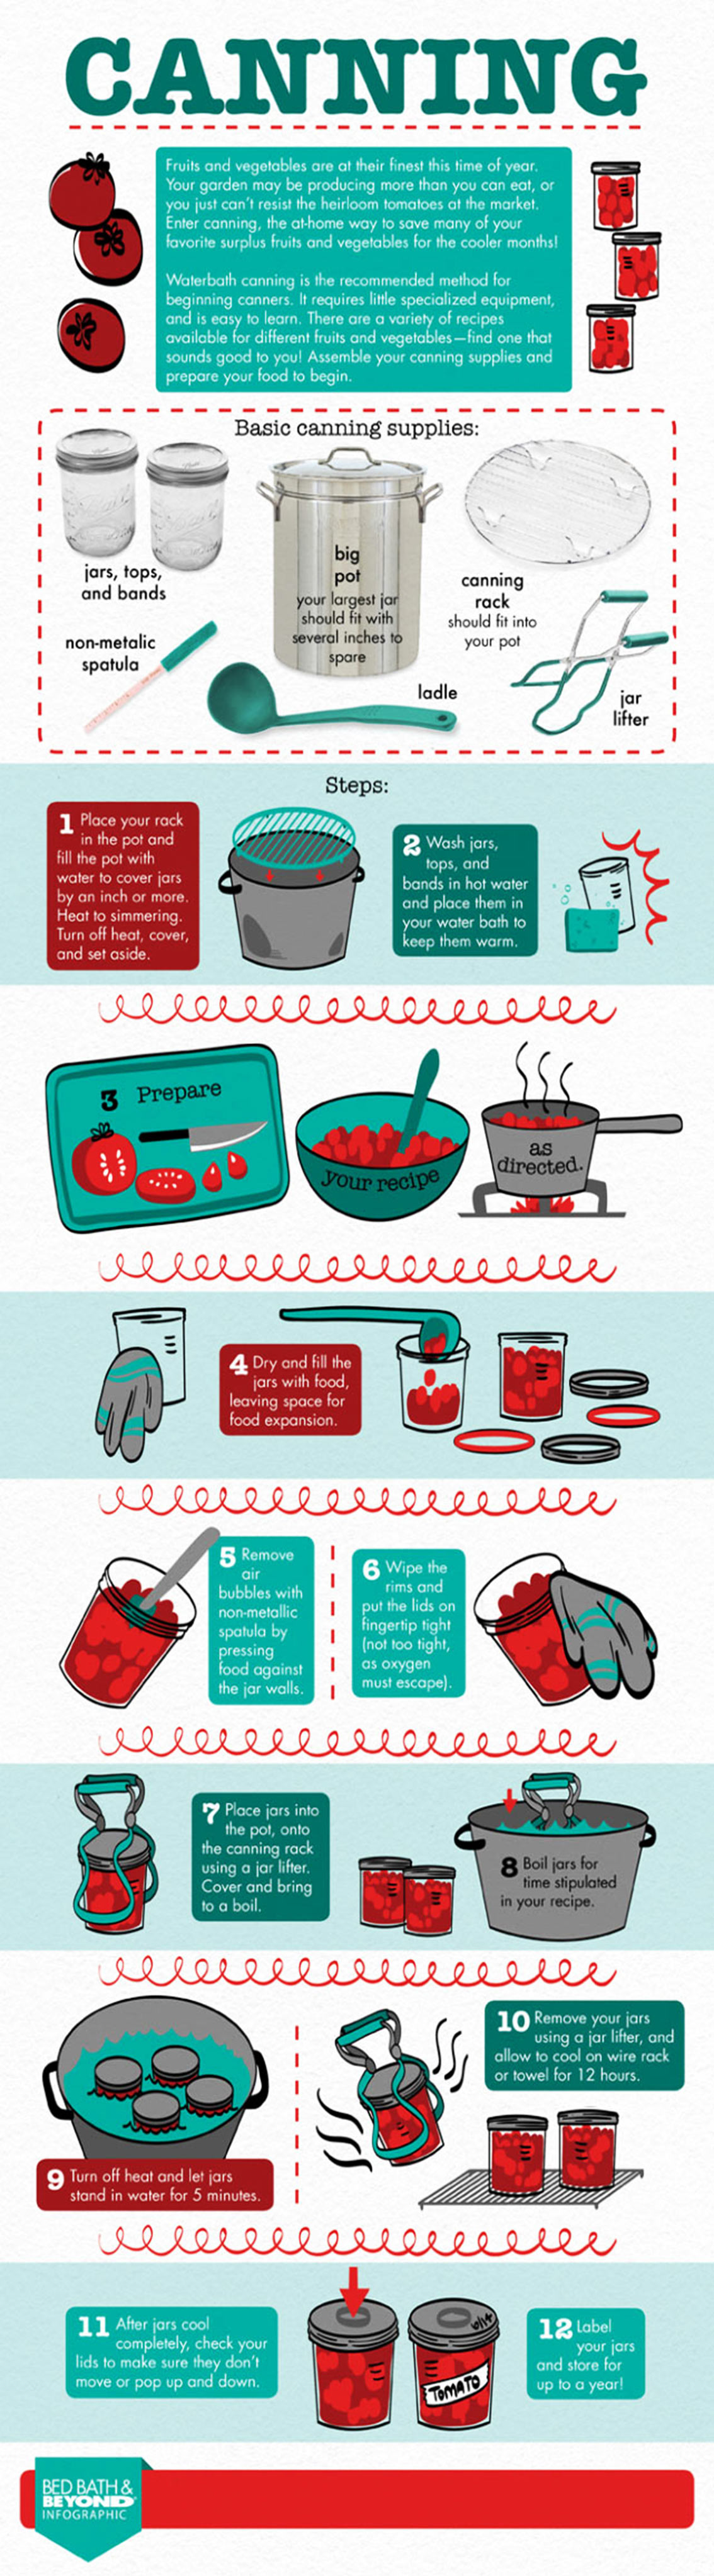 Canning Process for Food Preservation Infographic